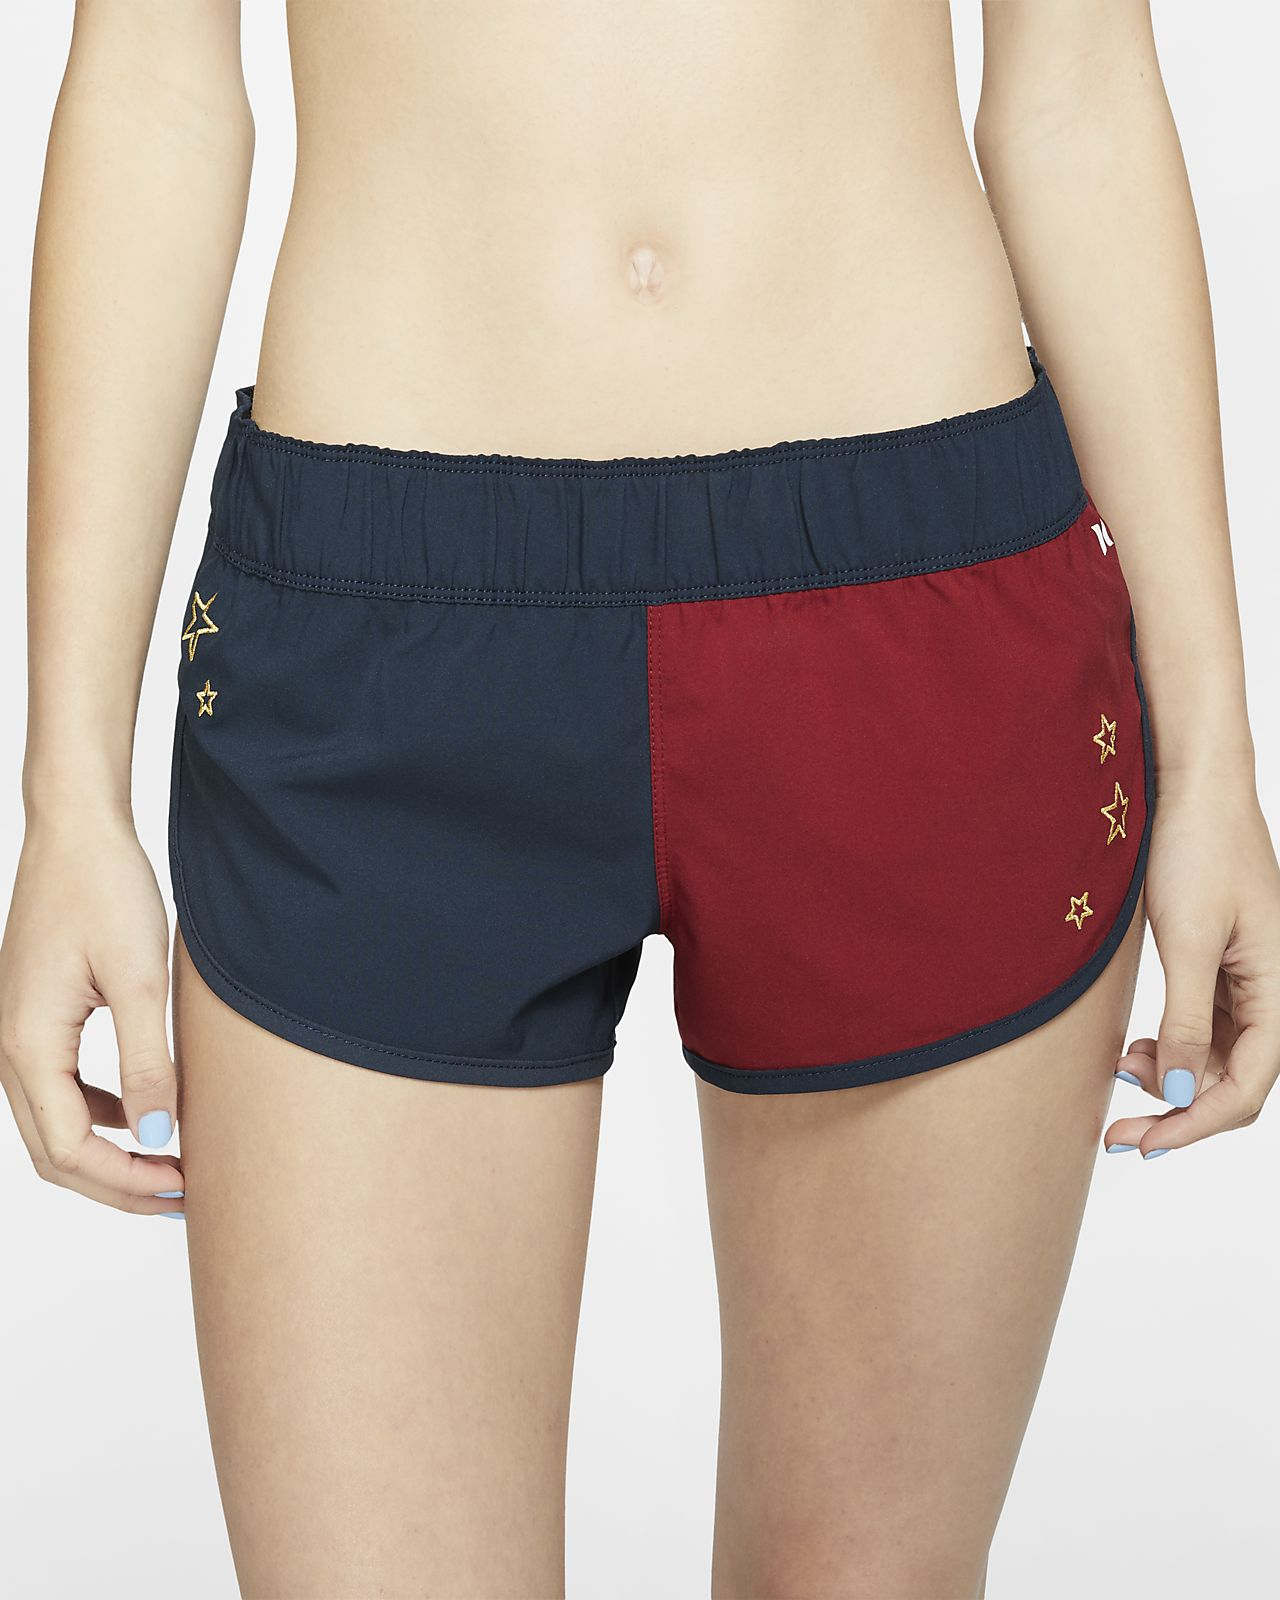 ff1e5f67c5 Hurley Supersuede Stars Beachrider Women's Board Shorts. Nike.com